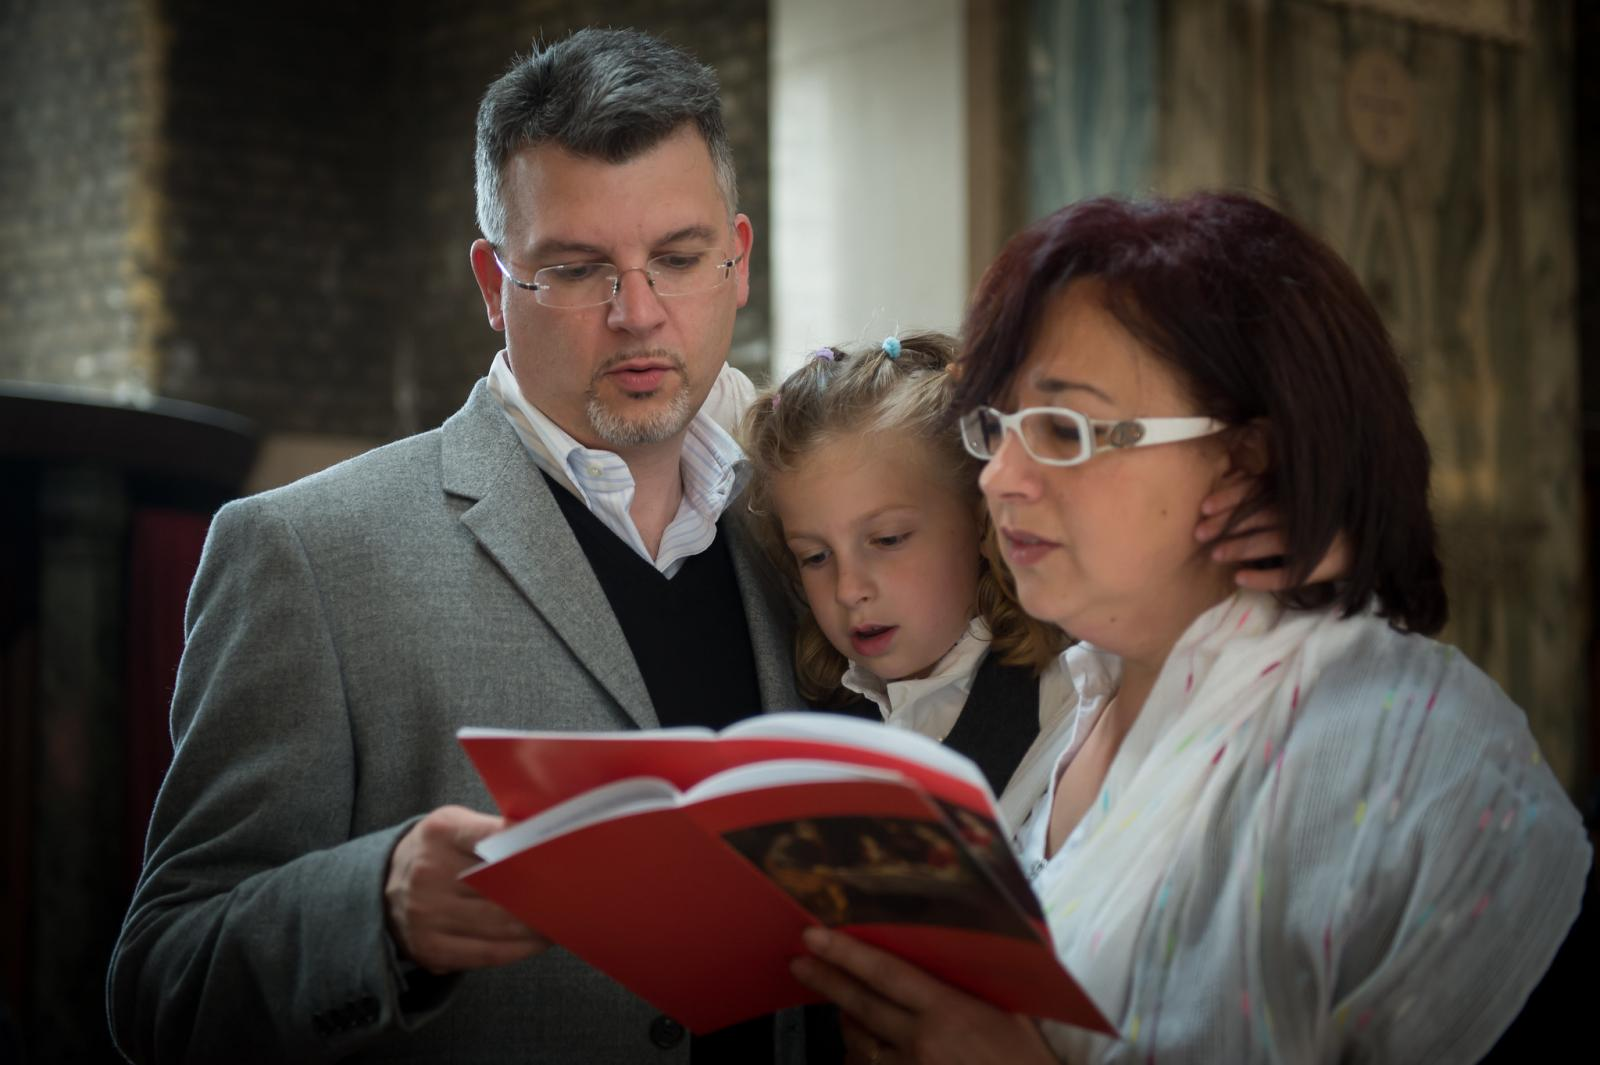 Family Life Resources - Diocese of Westminster